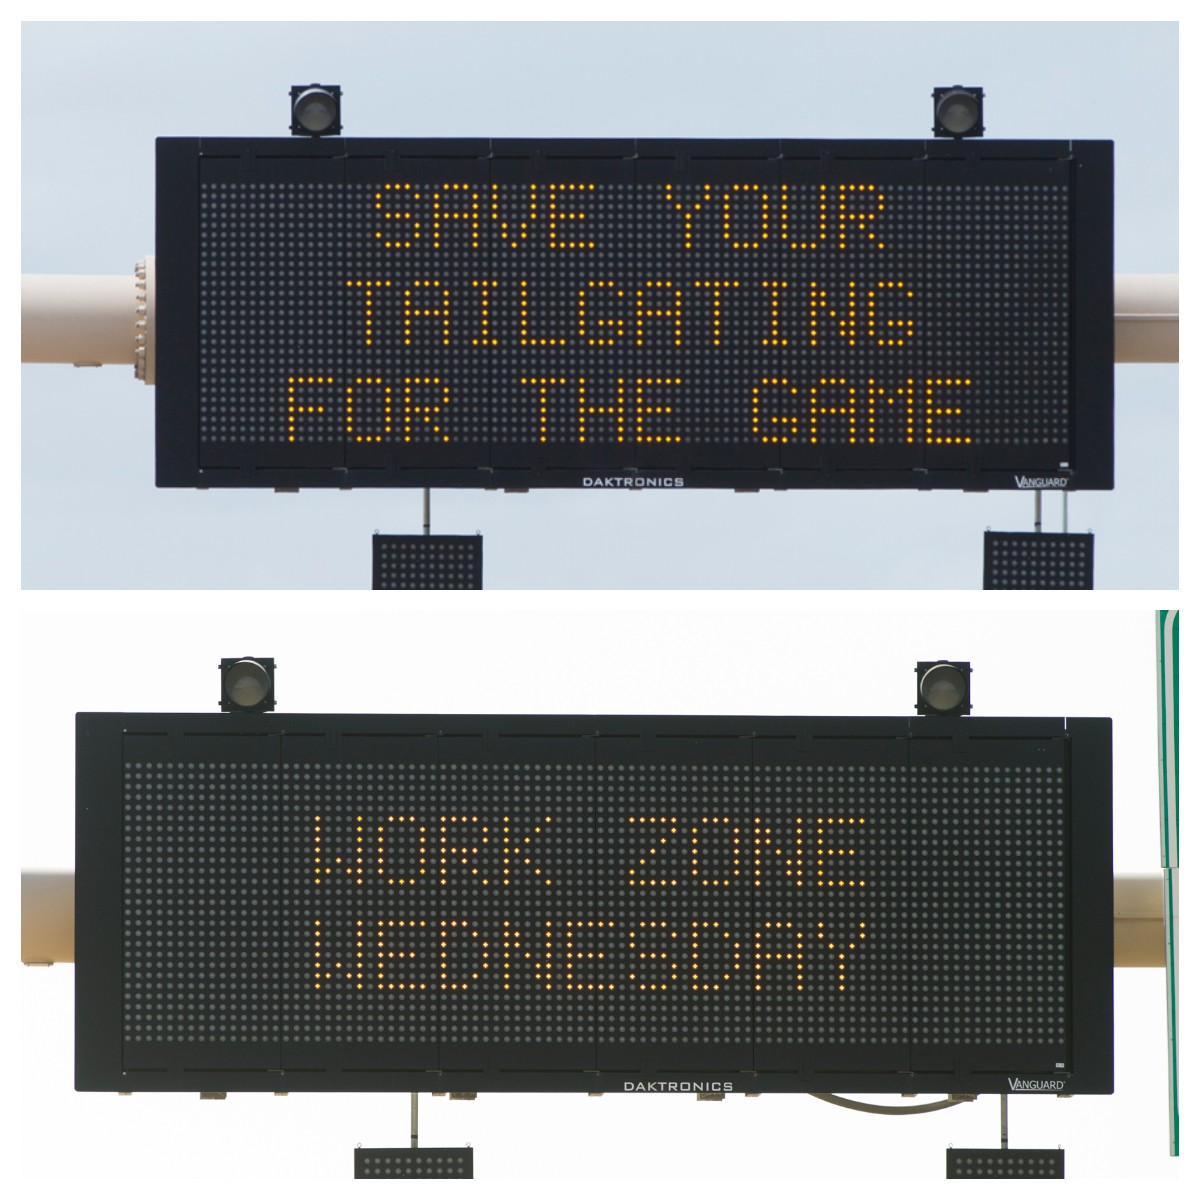 /content/dam/ok/en/odot/images/message-signs/09.07.16-1.jpg